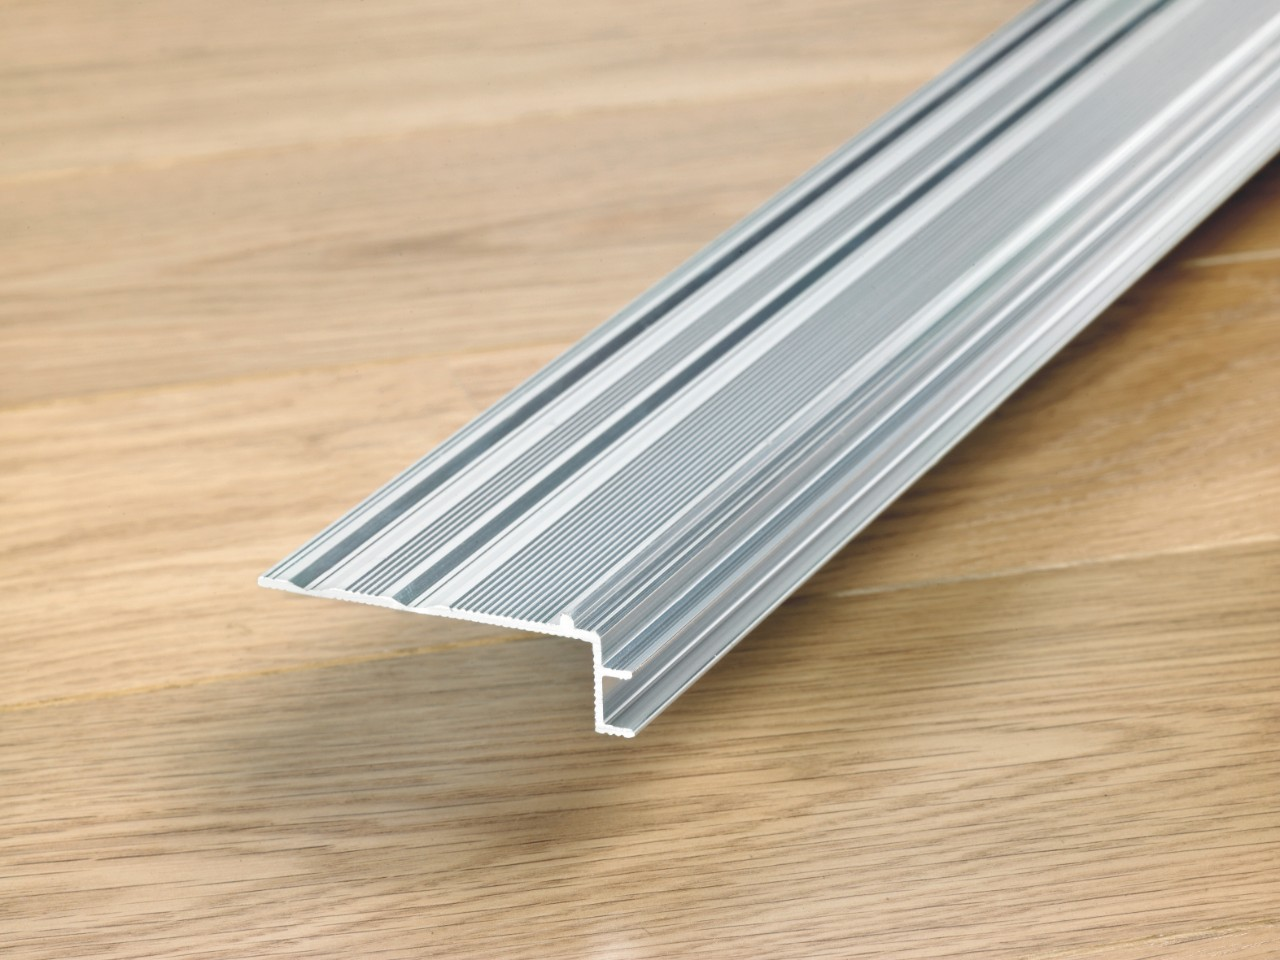 NEINCPBASE Laminate Accessories Incizo Aluminium Subprofile For Stairs NEINCPBASE6